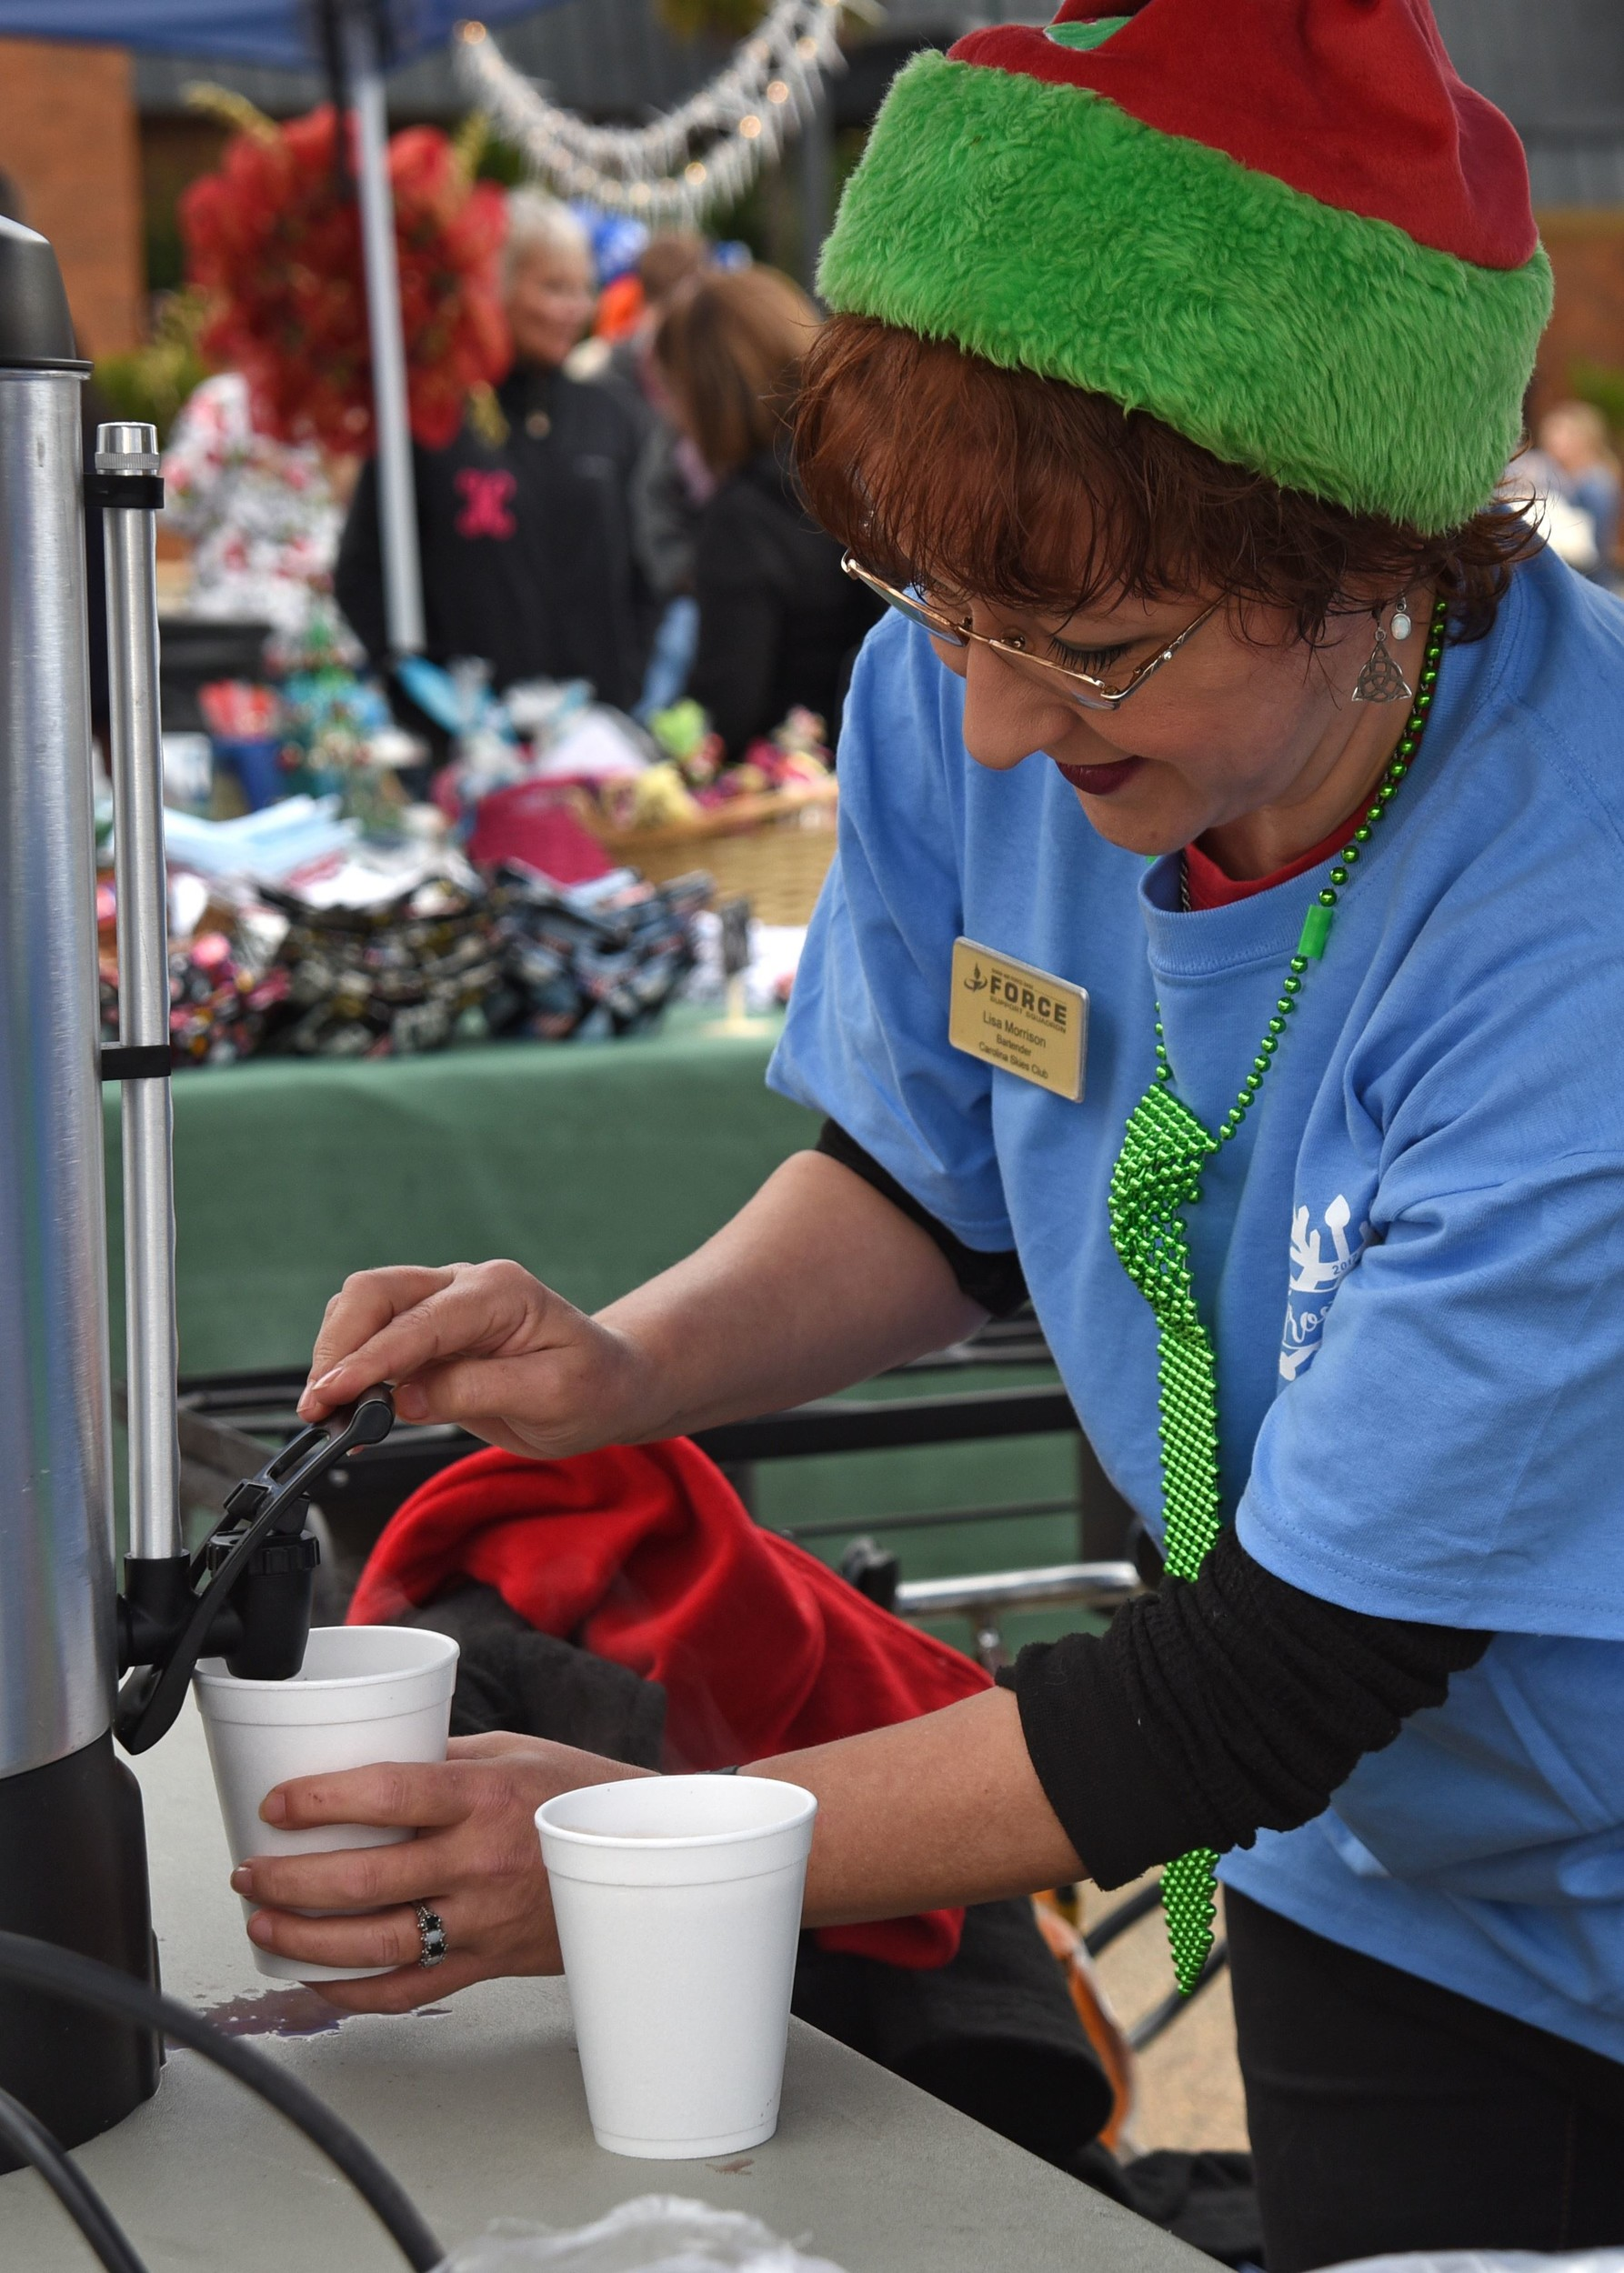 Lisa Morrison, 20th Force Support Squadron employee, prepares a drink for a guest at Frosty Fest, a family-friendly winter celebration at Shaw Air Force Base. Approximately 4,500 Team Shaw members gathered to eat, play, shop and celebrate the season.